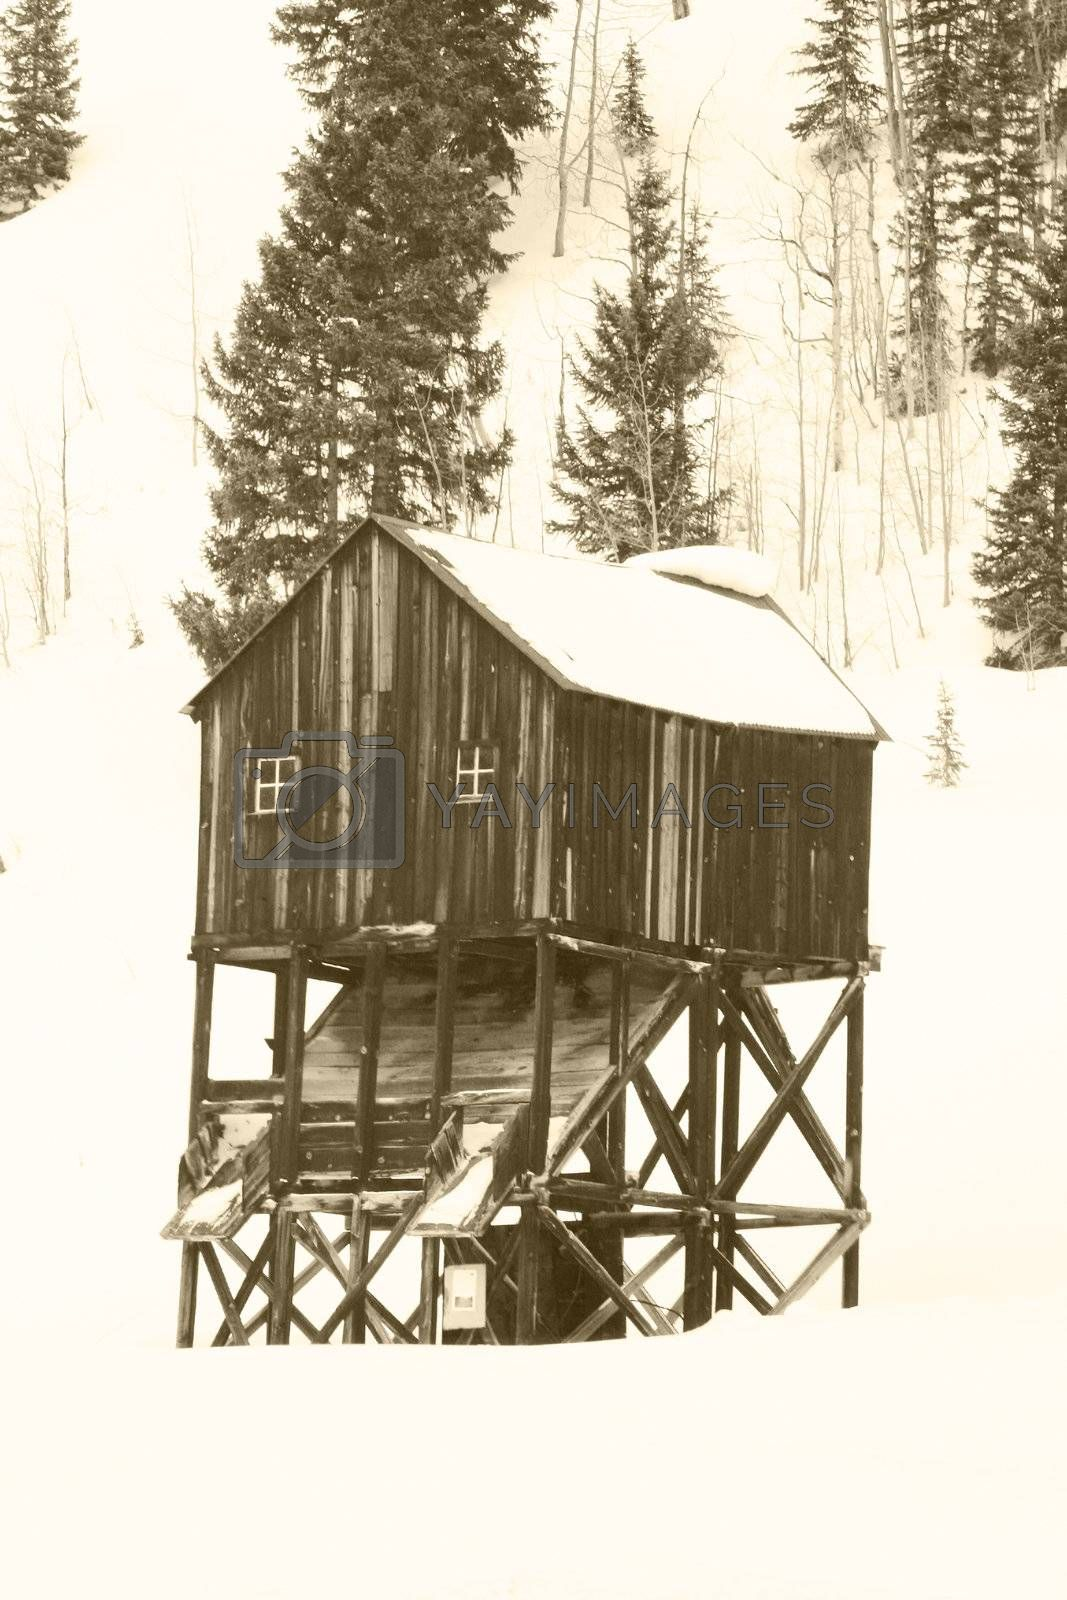 Old mining hut in mountains with snow